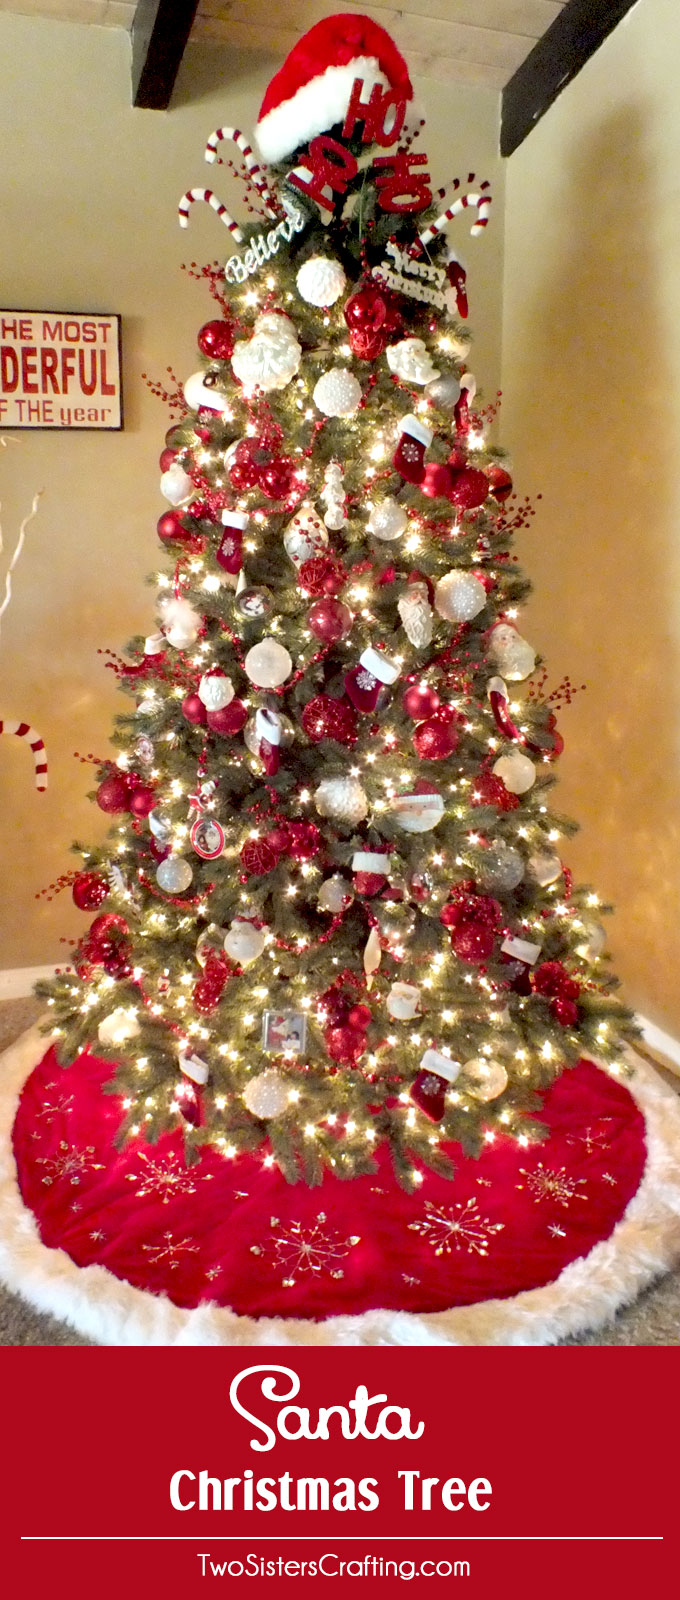 I have finally figured out the perfect formula for Christmas Tree Decorating and I share these tips and tricks in my Santa Christmas Tree decorating tutorial. Follow us us for more fun Christmas Decorating ideas.